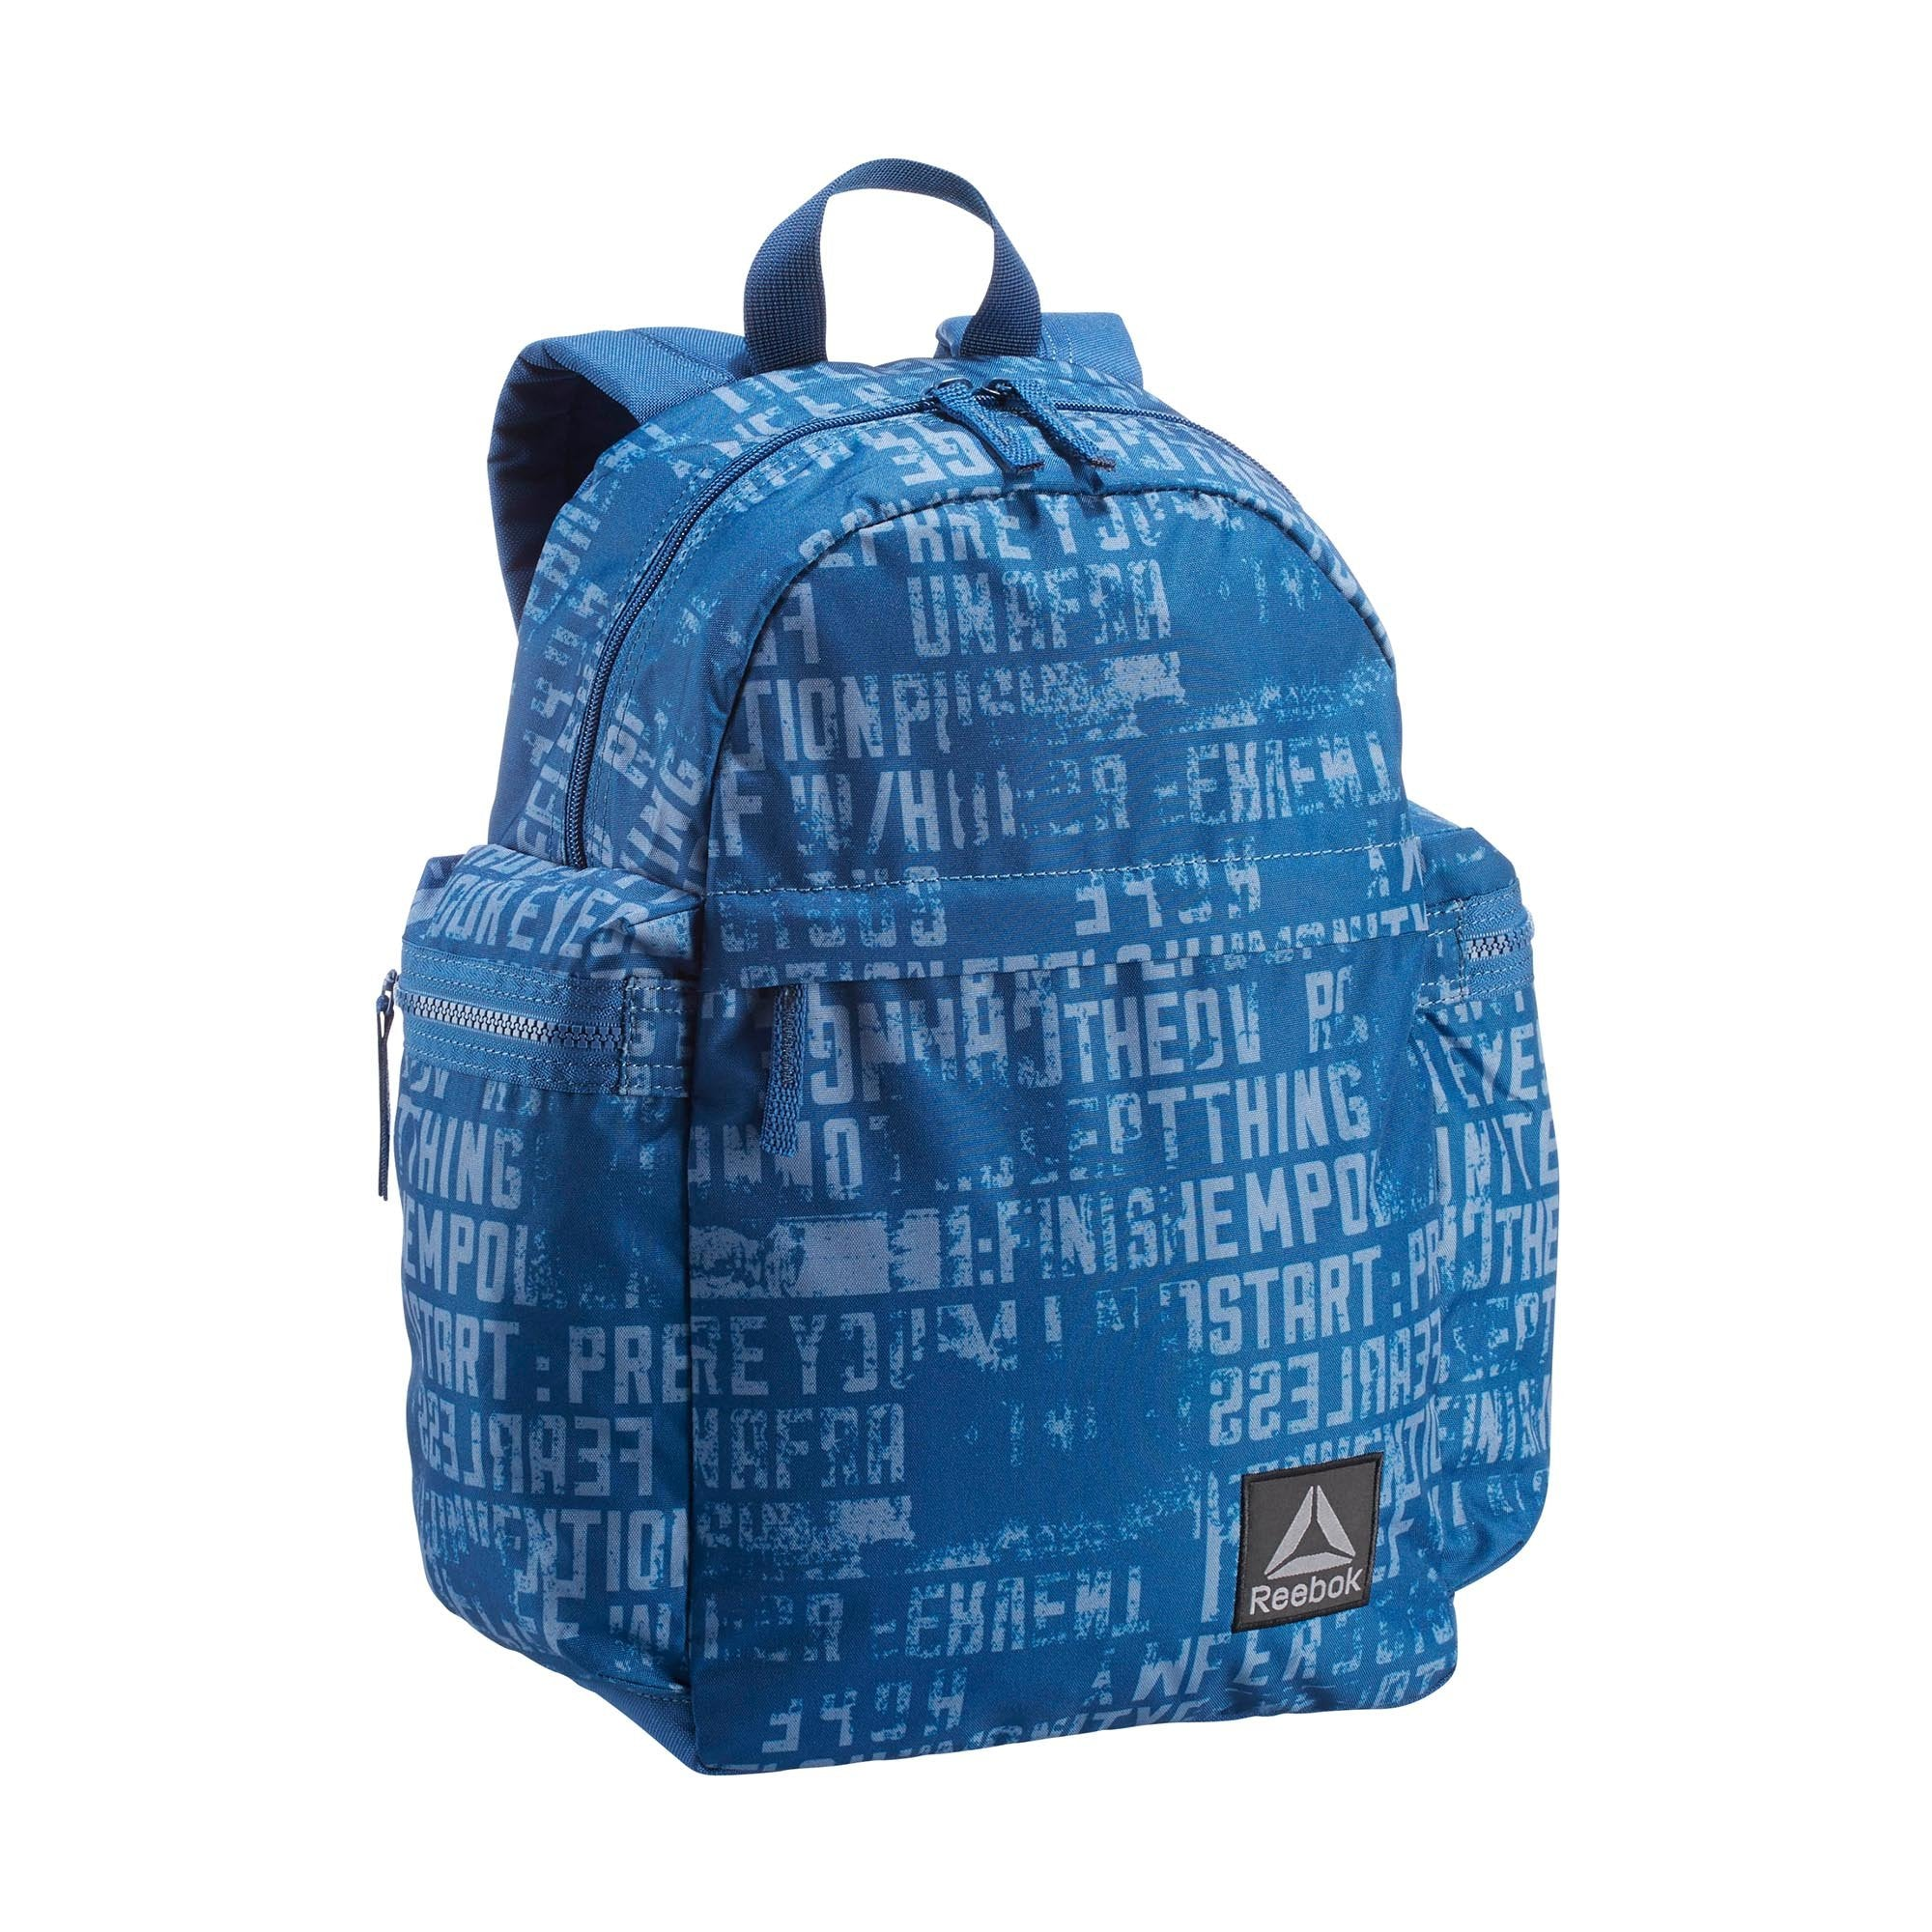 0a96b9ef942c Buy Reebok Kids Graphic Backpack